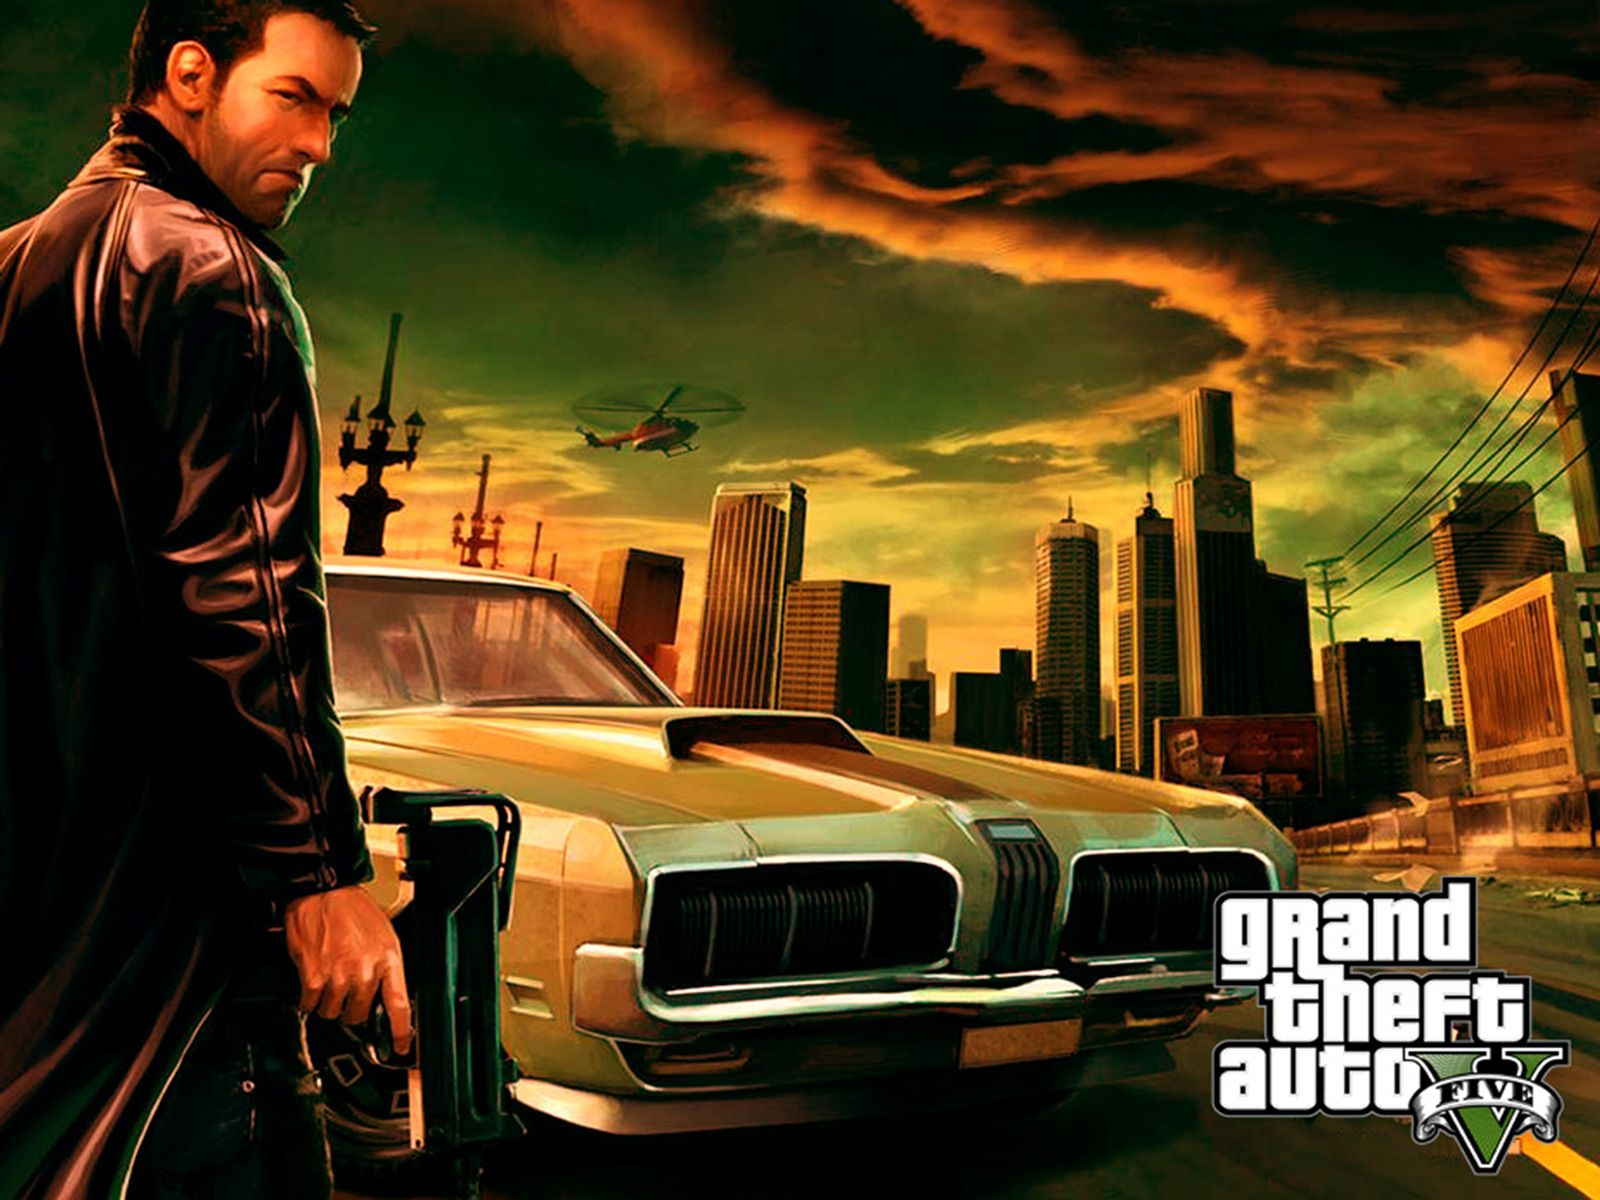 units of gta wallpaper hd 1280×720 gta 5 hd wallpapers (42